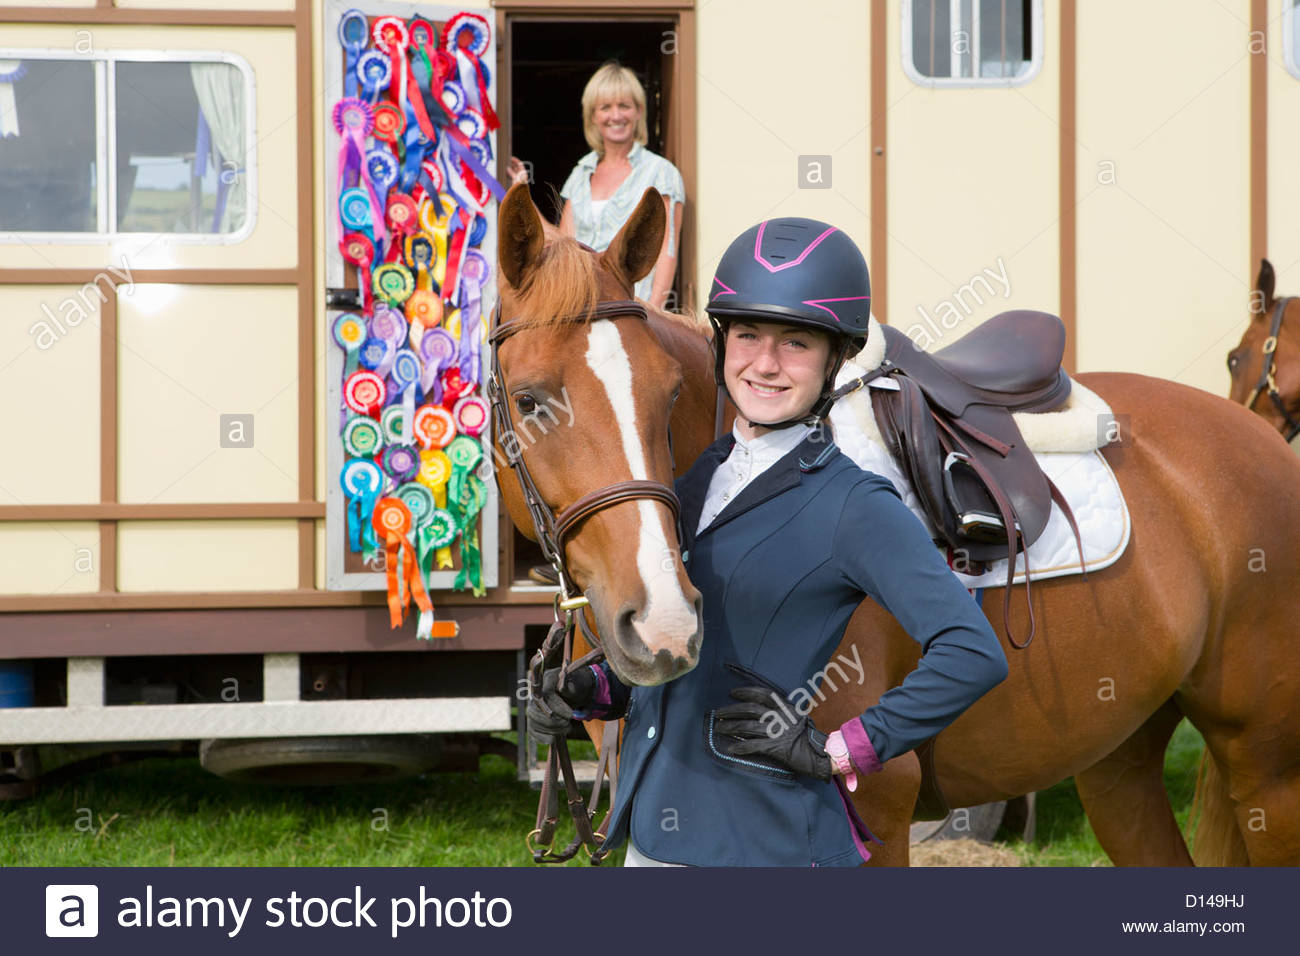 Portrait of smiling girl in equestrian uniform and horse near trailer with rosettes - Stock Image